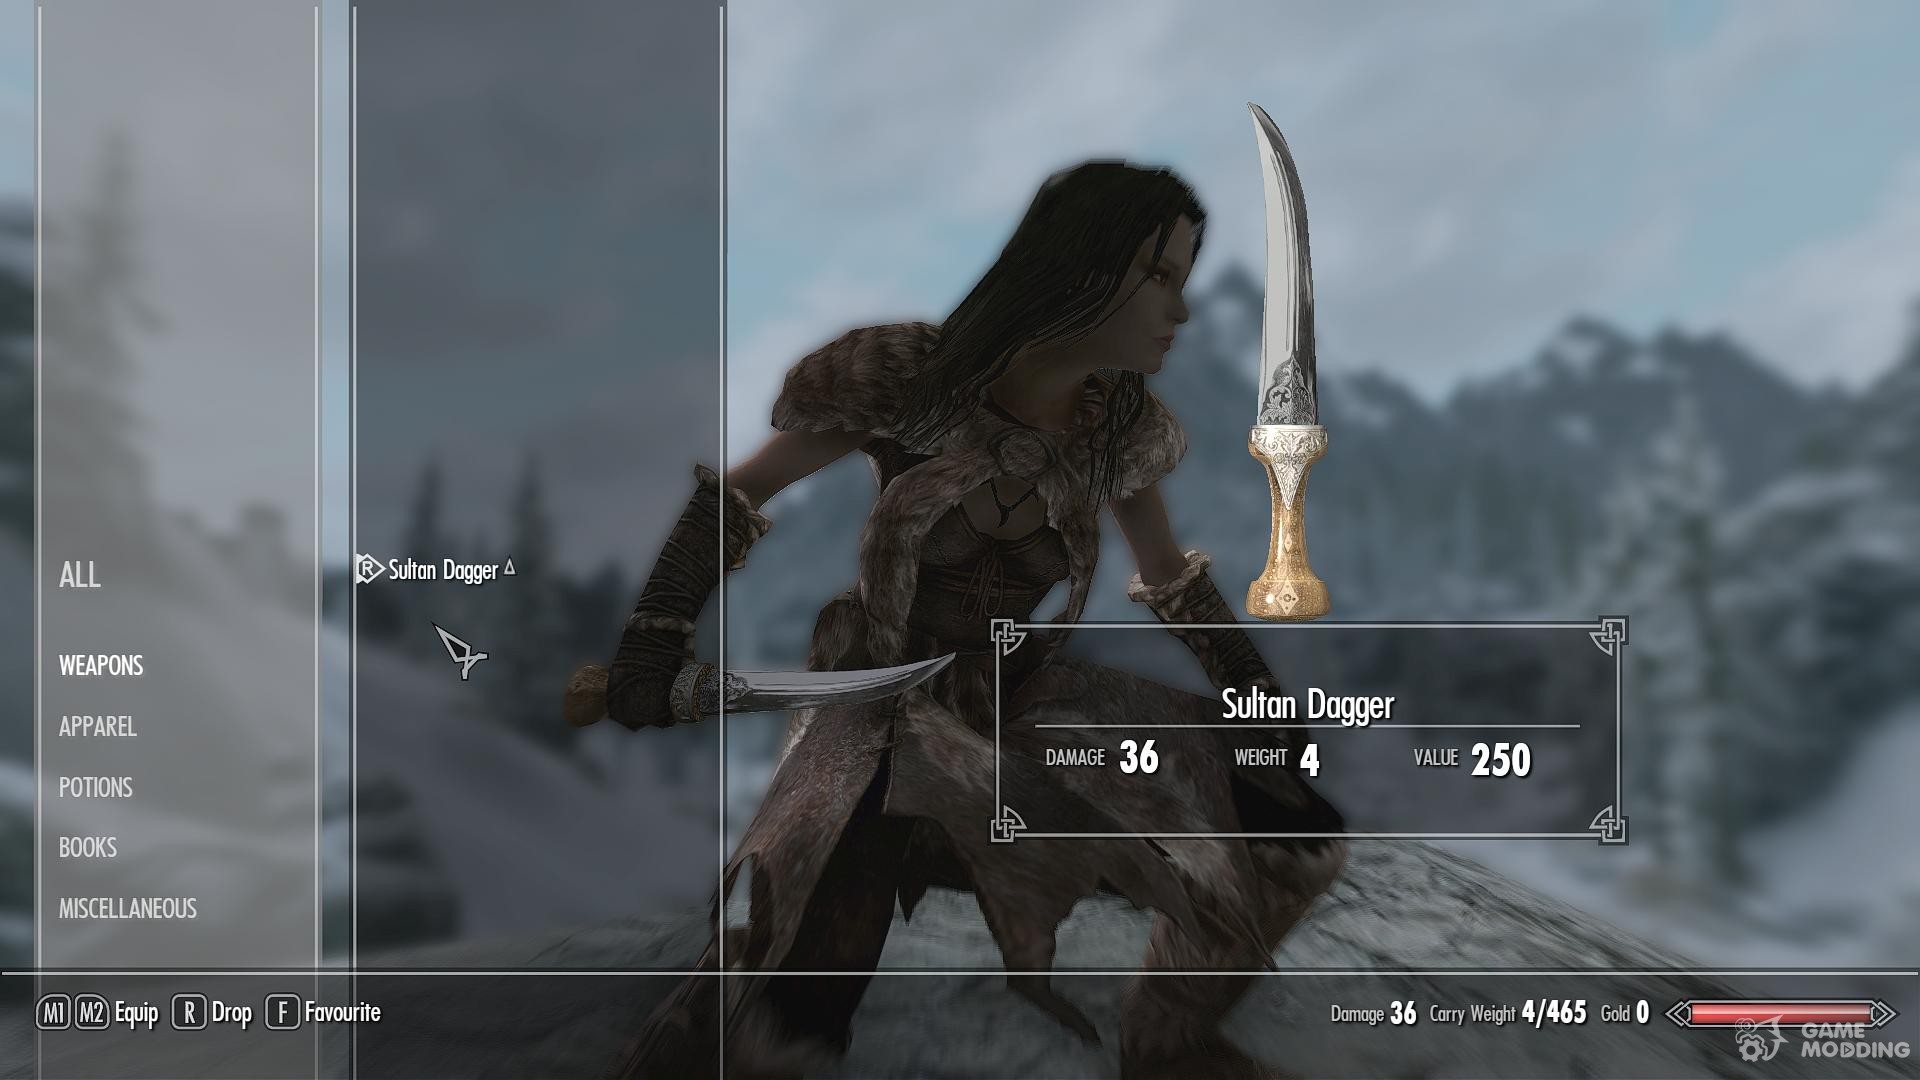 The daggers of skyrim marriage